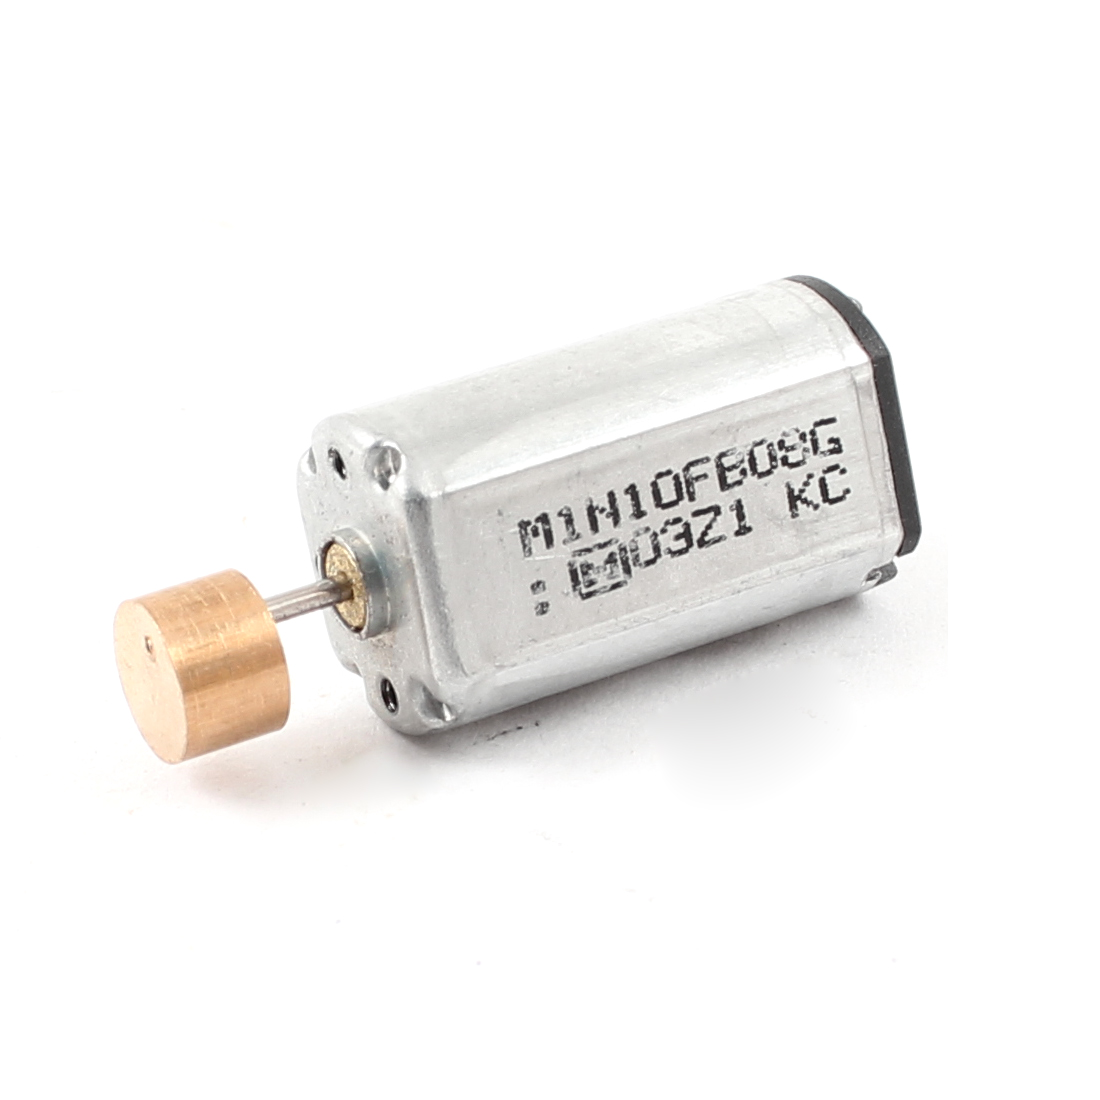 Silver Tone DC 6V 10000RPM 0.04A Mini Vibration Motor Spare Part